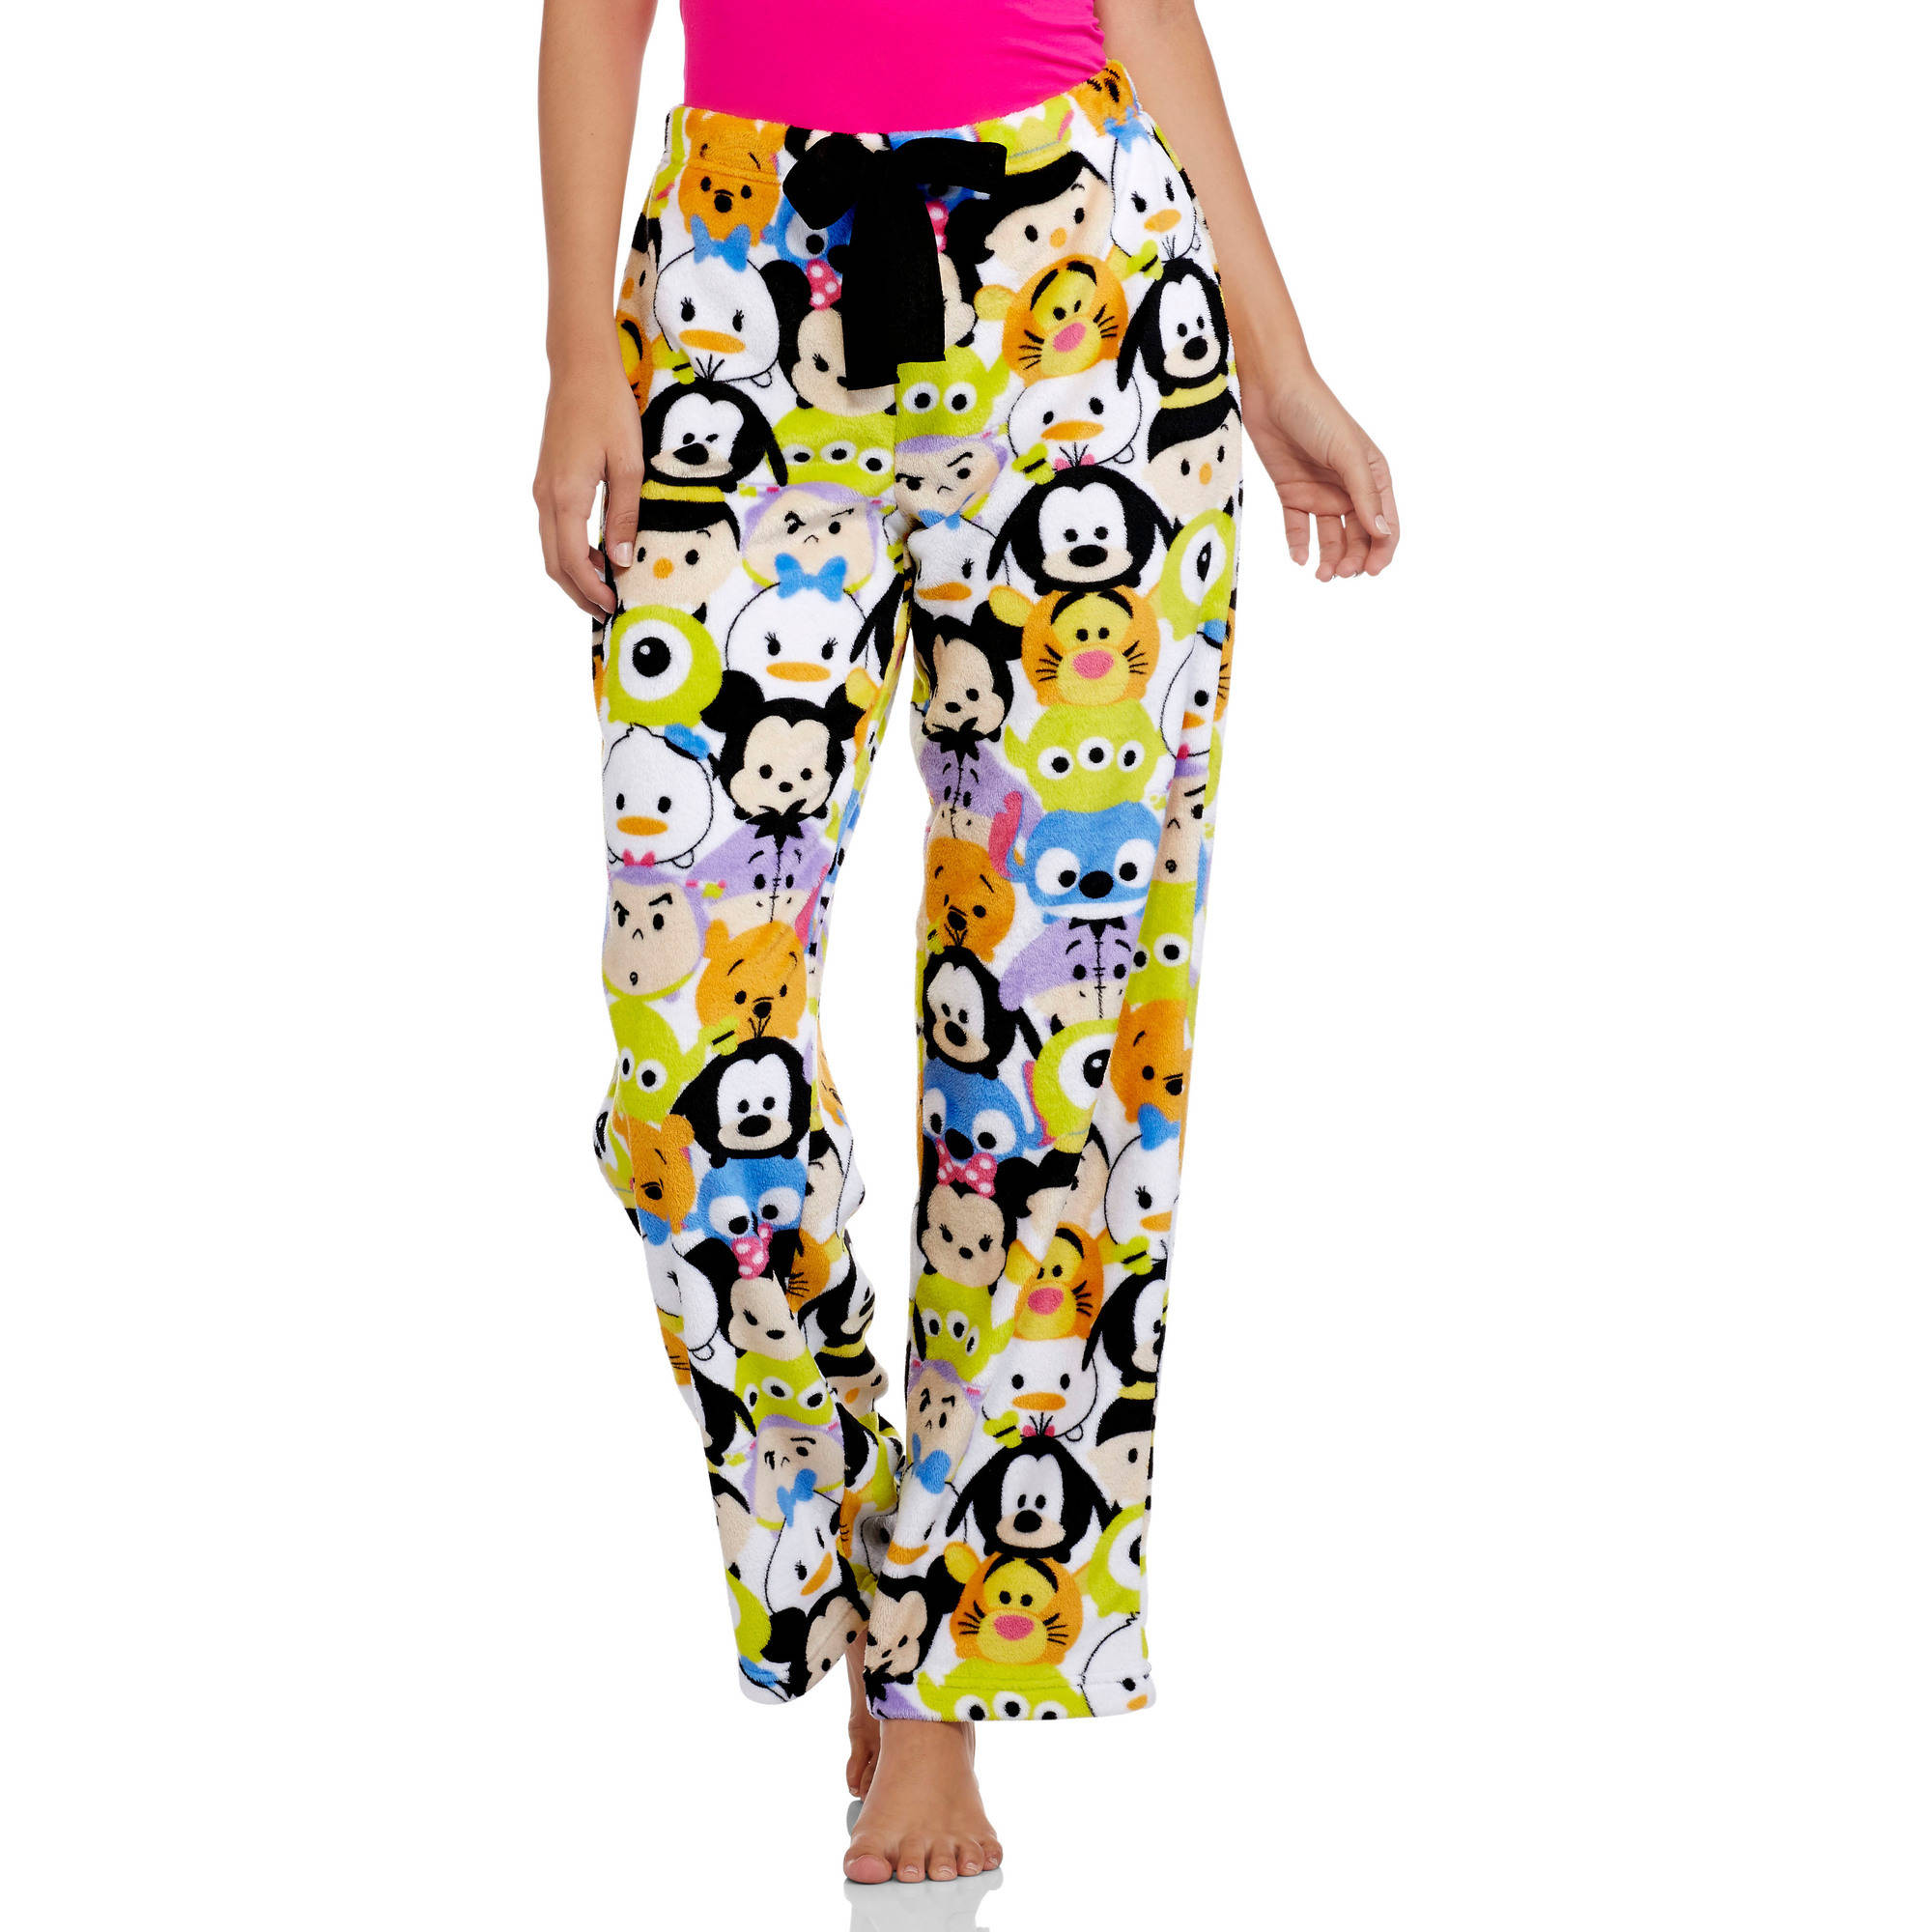 Tsum Tsum Women's License Pajama Super Minky Plush Fleece Sleep Pant